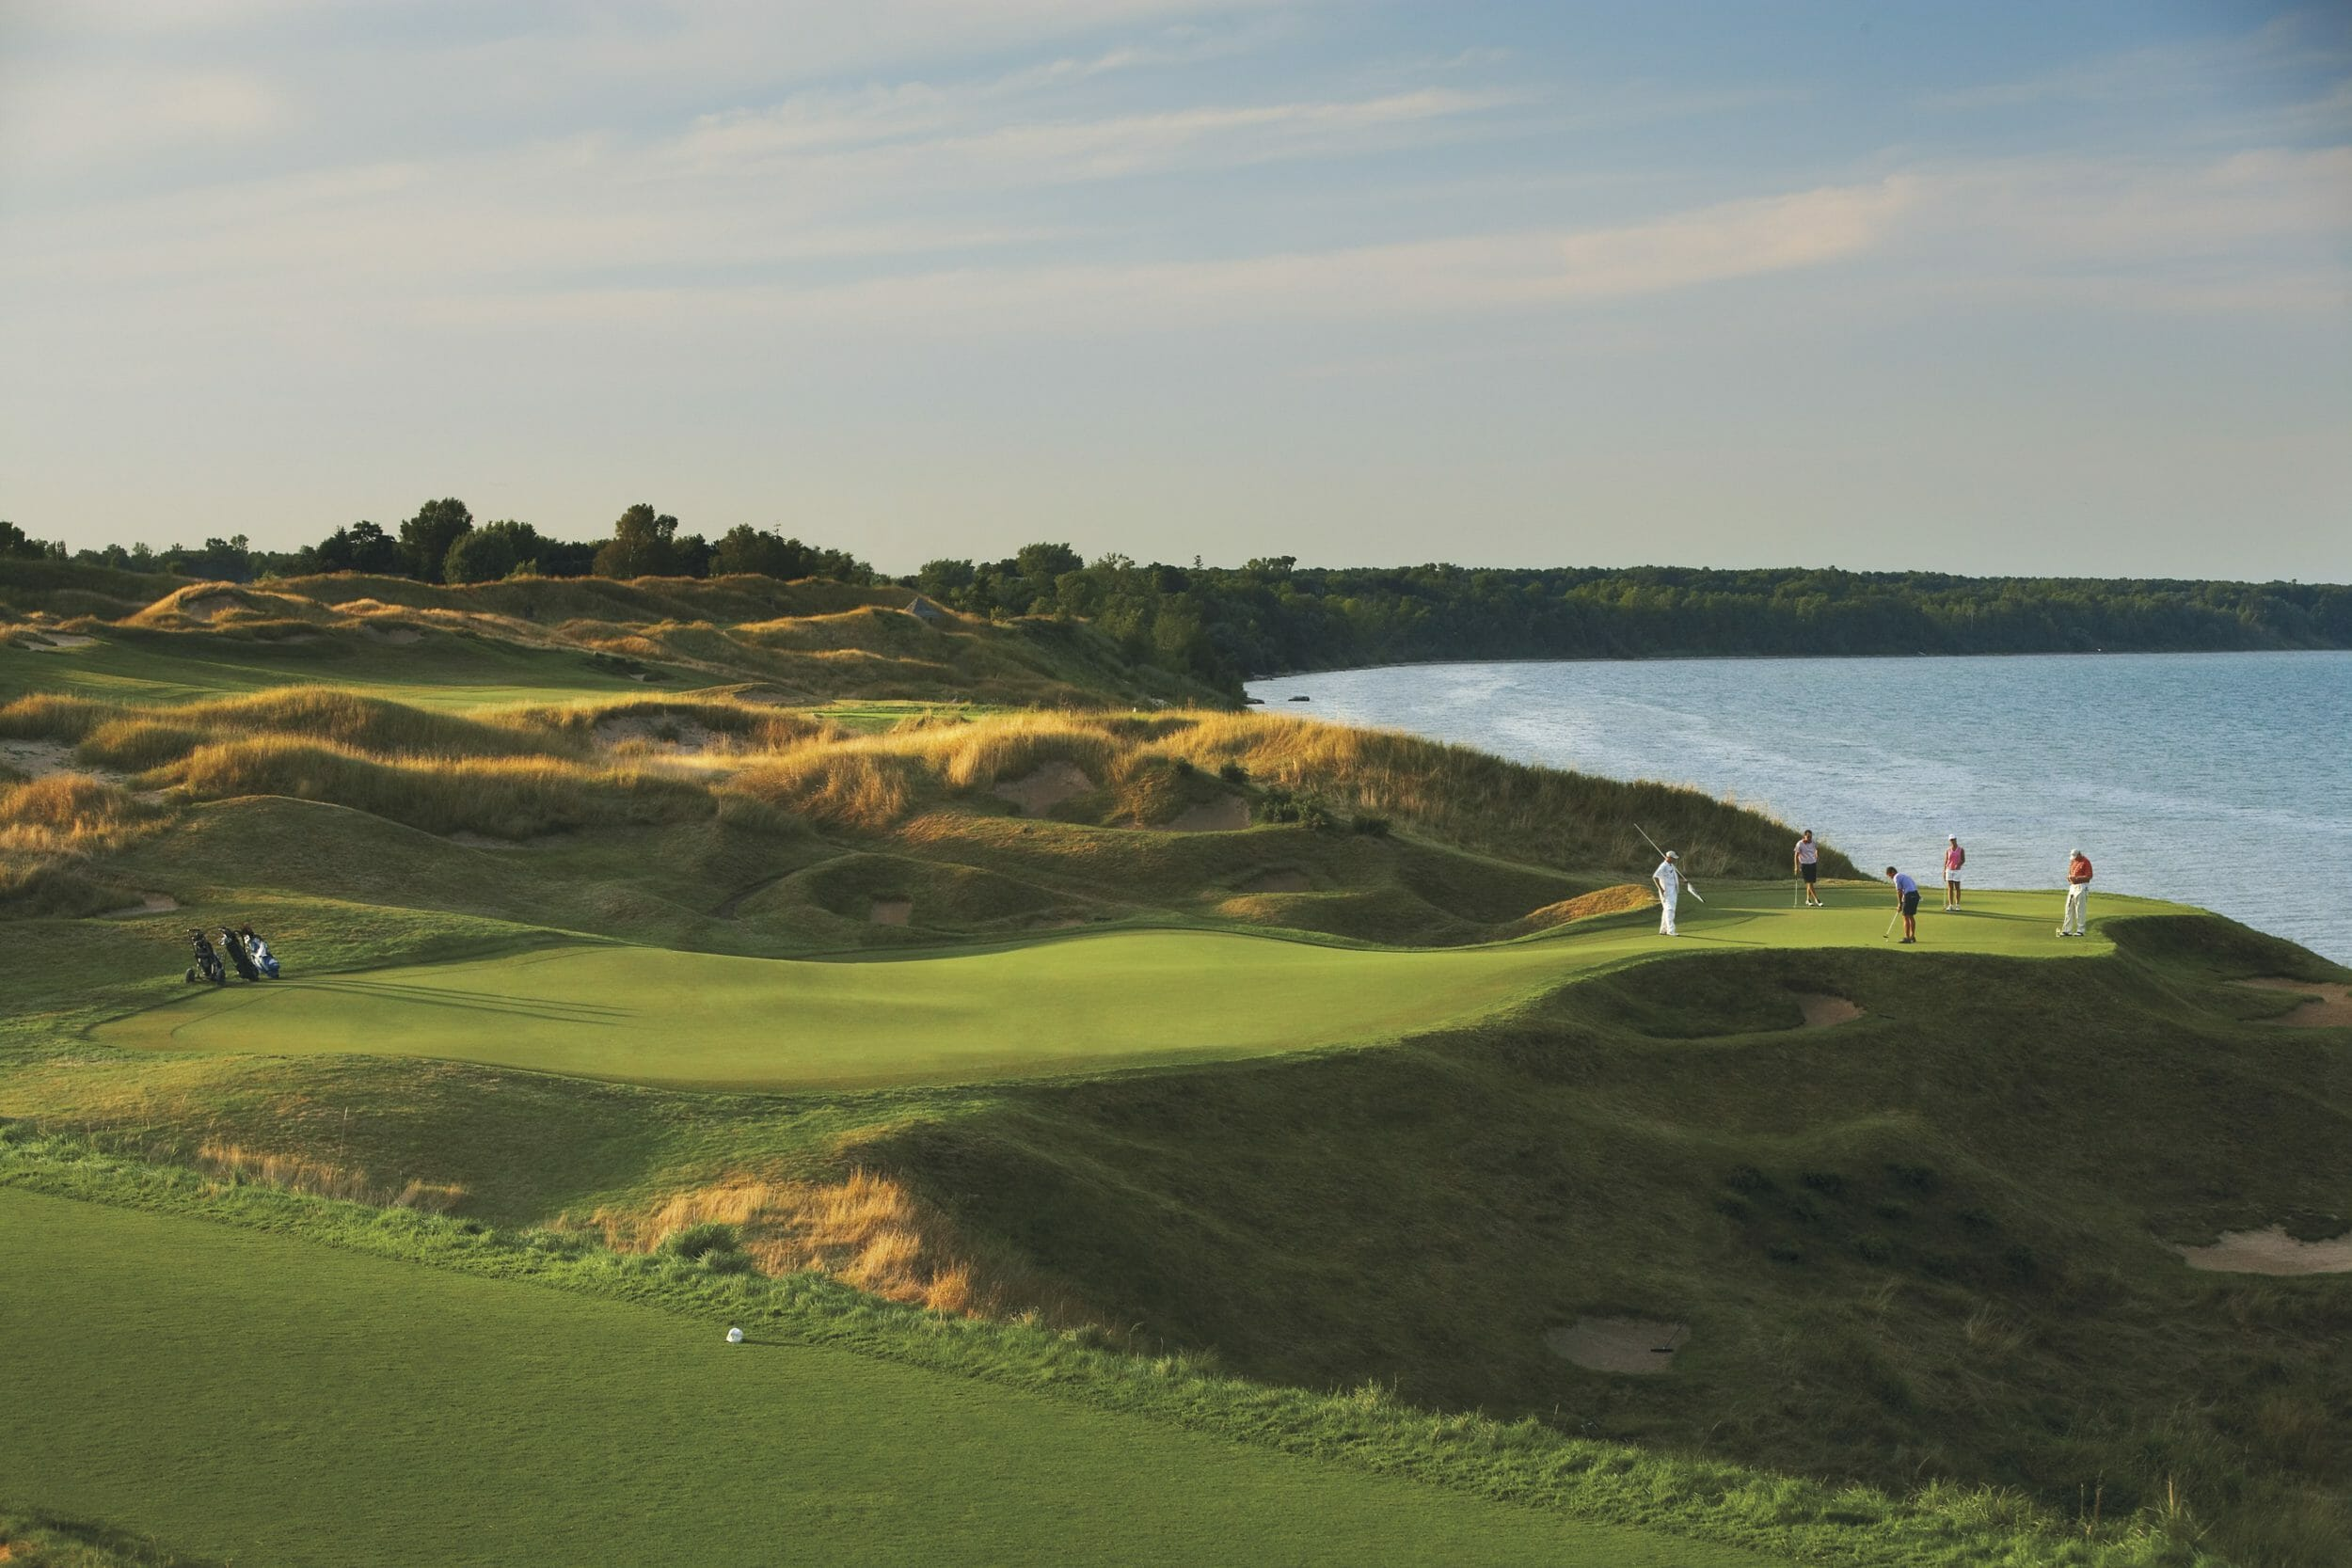 Image of the Straits 12th tee by the sea, Destination Kohler, Wisconsin, USA